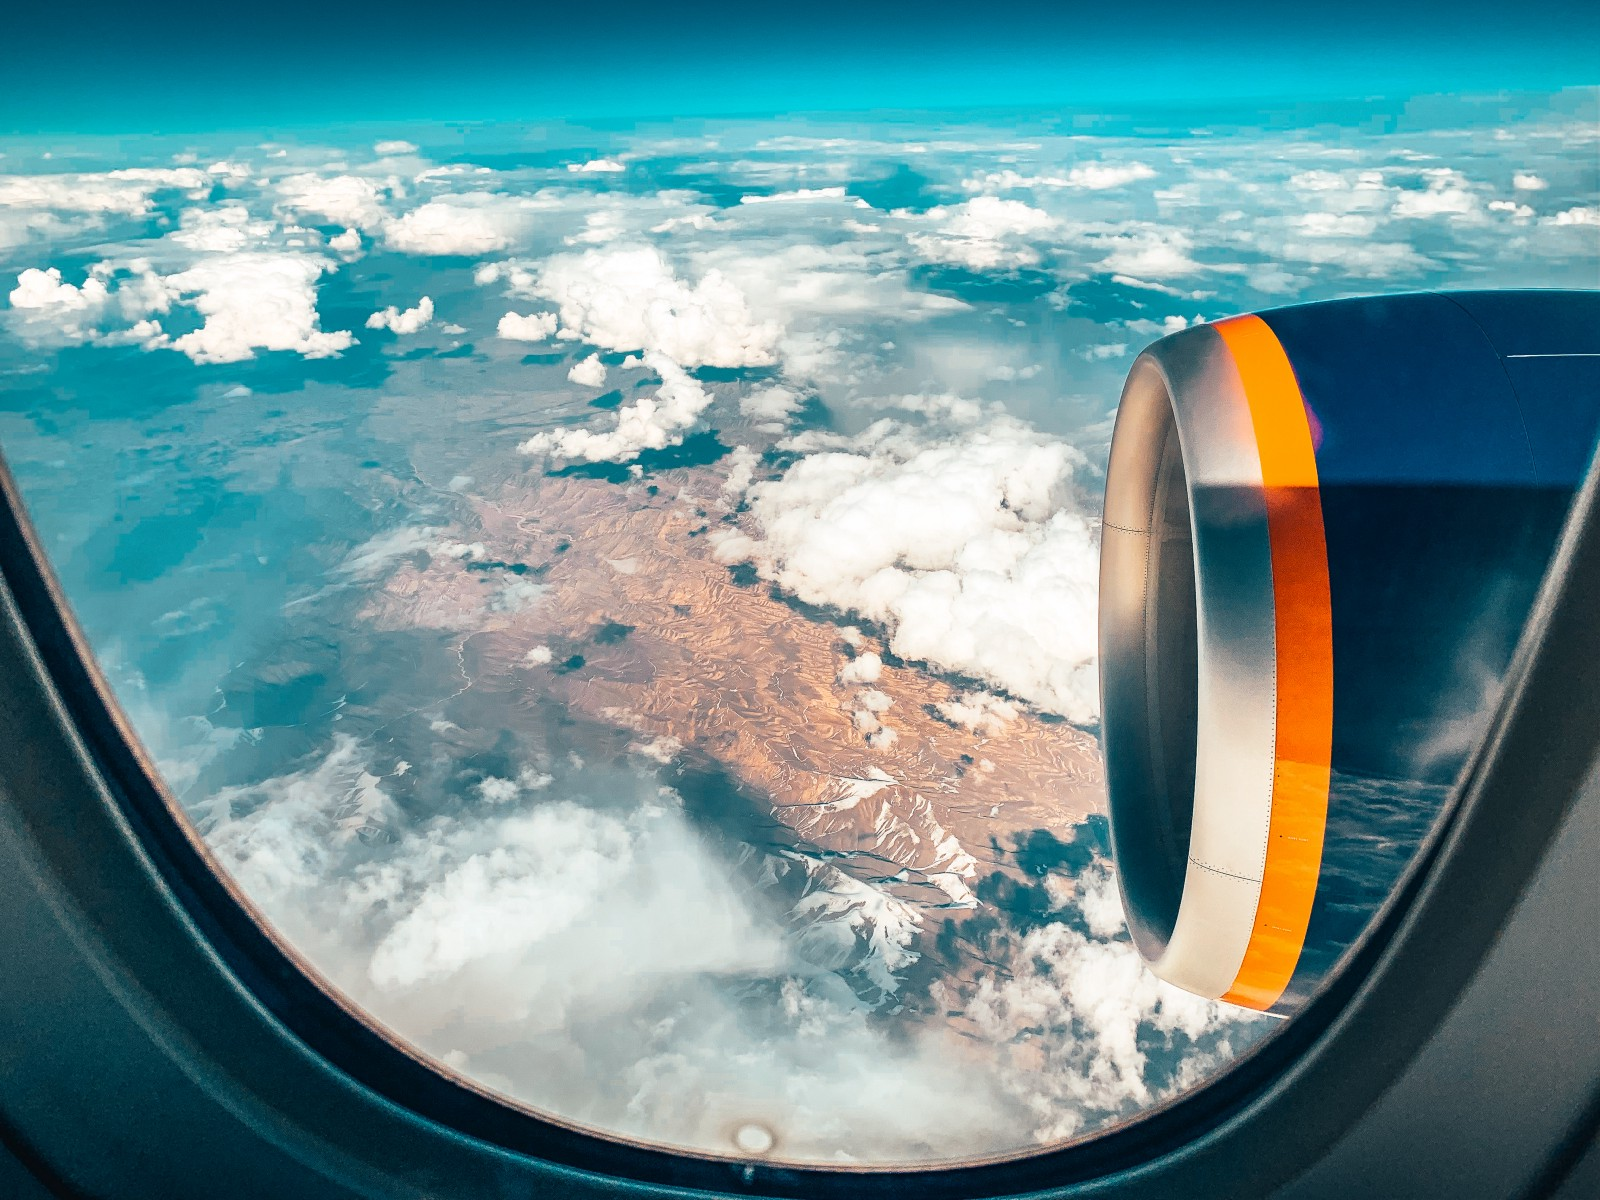 A jet engine and clouds photographed from inside and airplane.